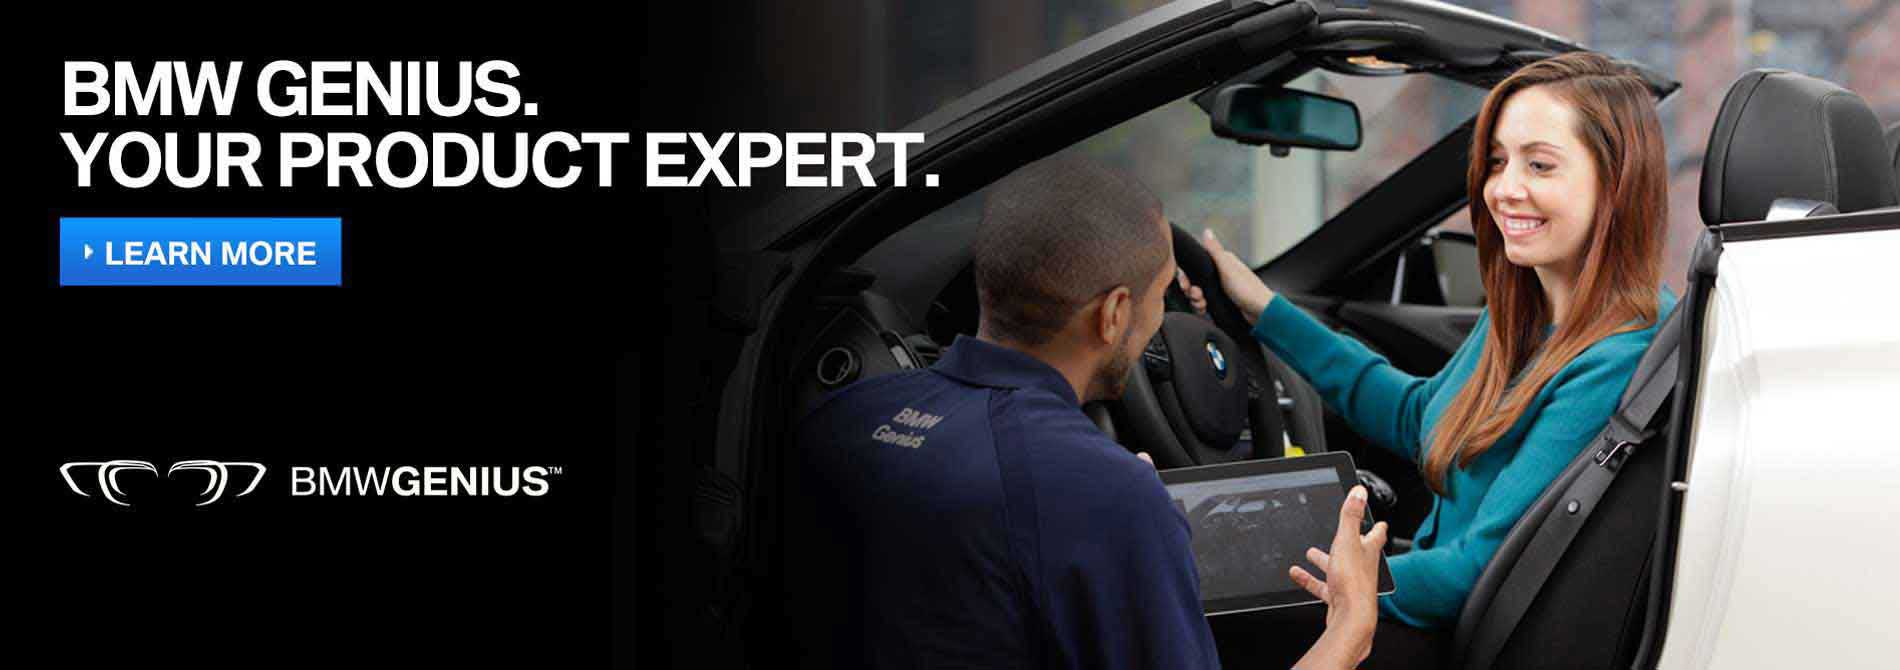 BMW Product Expert